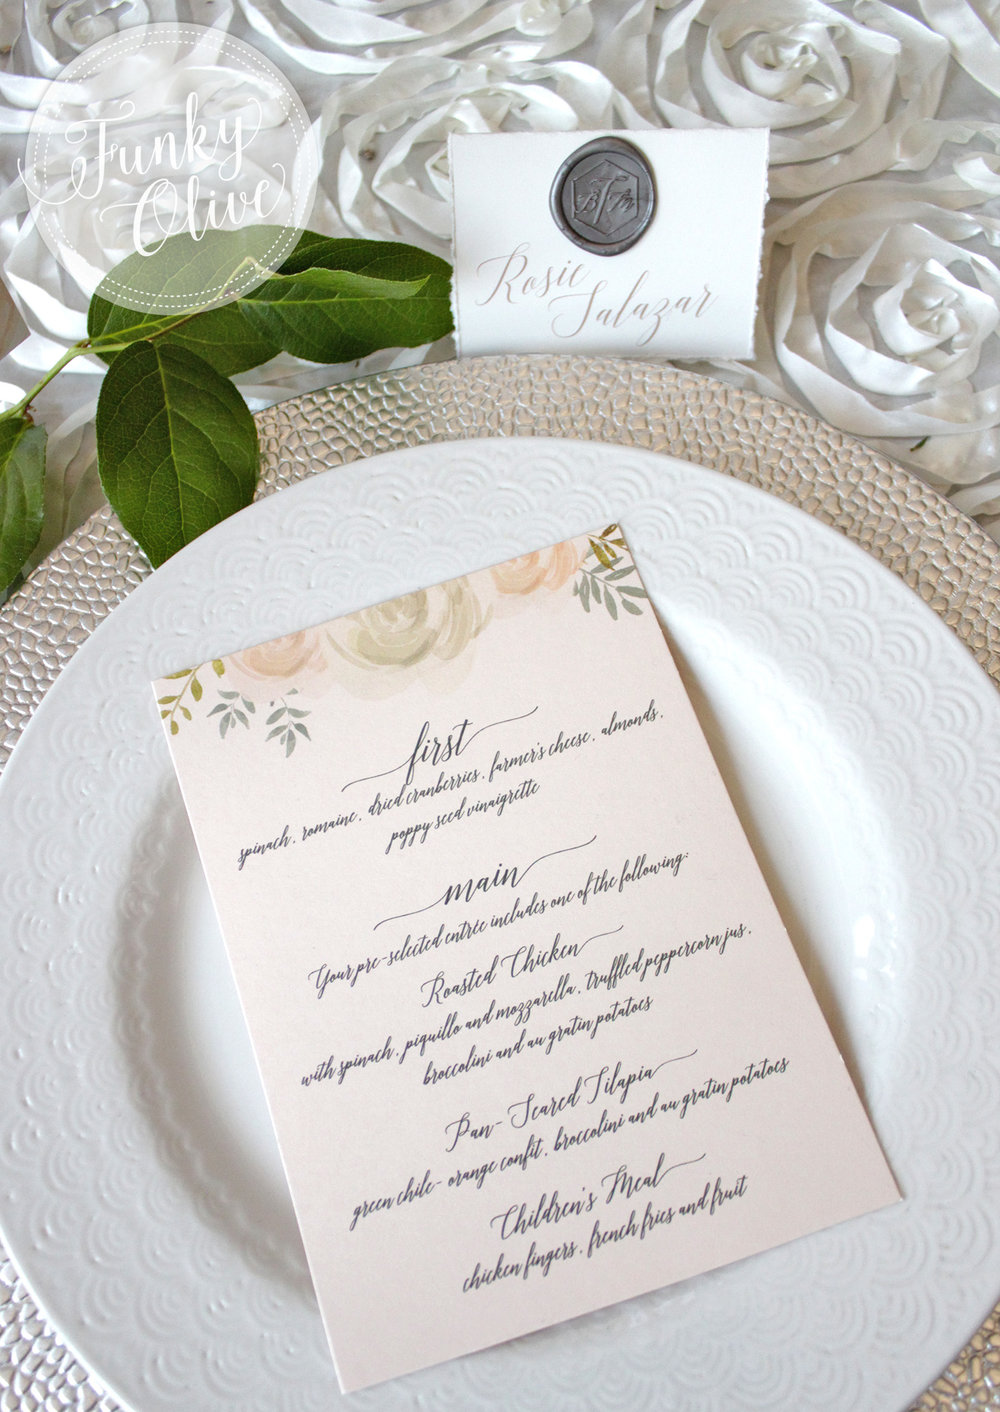 DECKLED EDGE WAX SEAL PLACE CARD 2.jpg